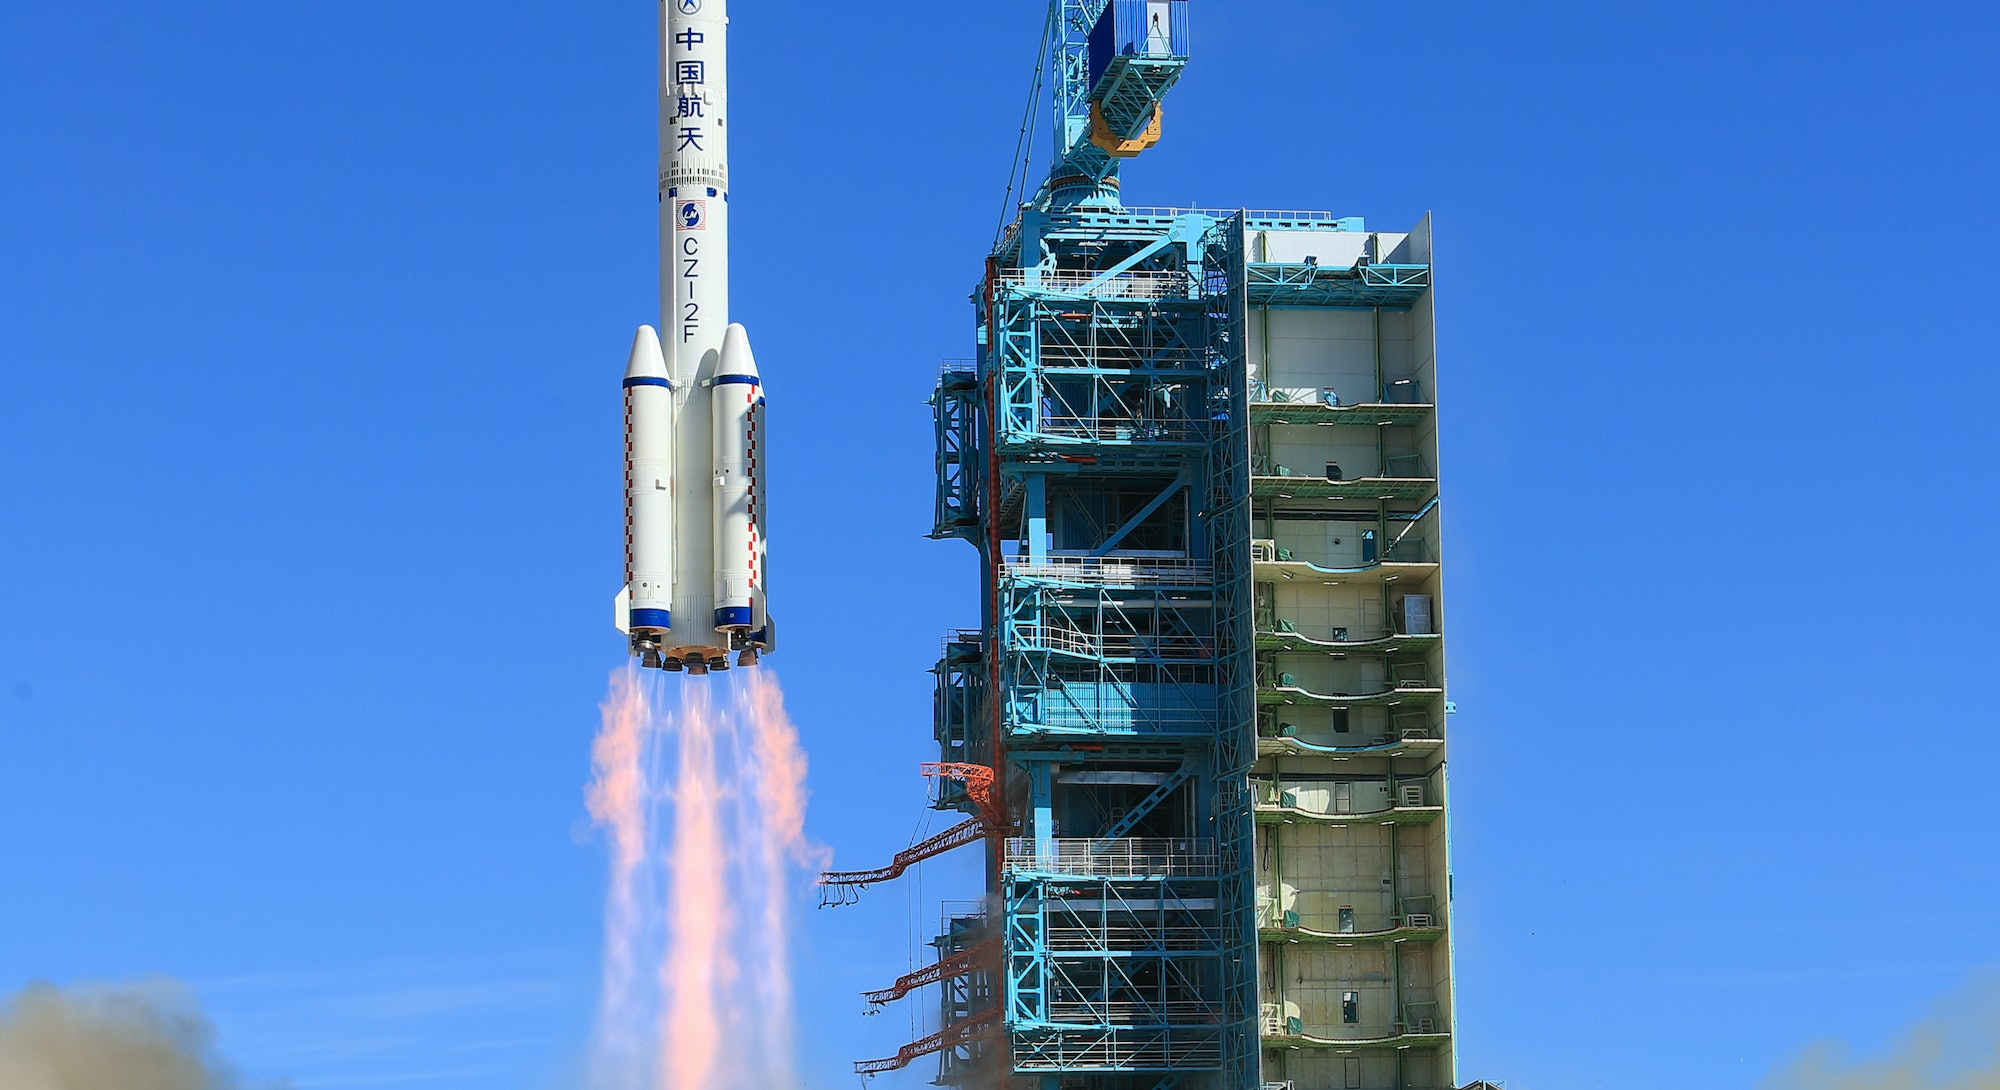 JIUQUAN, CHINA - JUNE 17: The Shenzhou-12 spacecraft is launched from the Jiuquan Satellite Launch C...